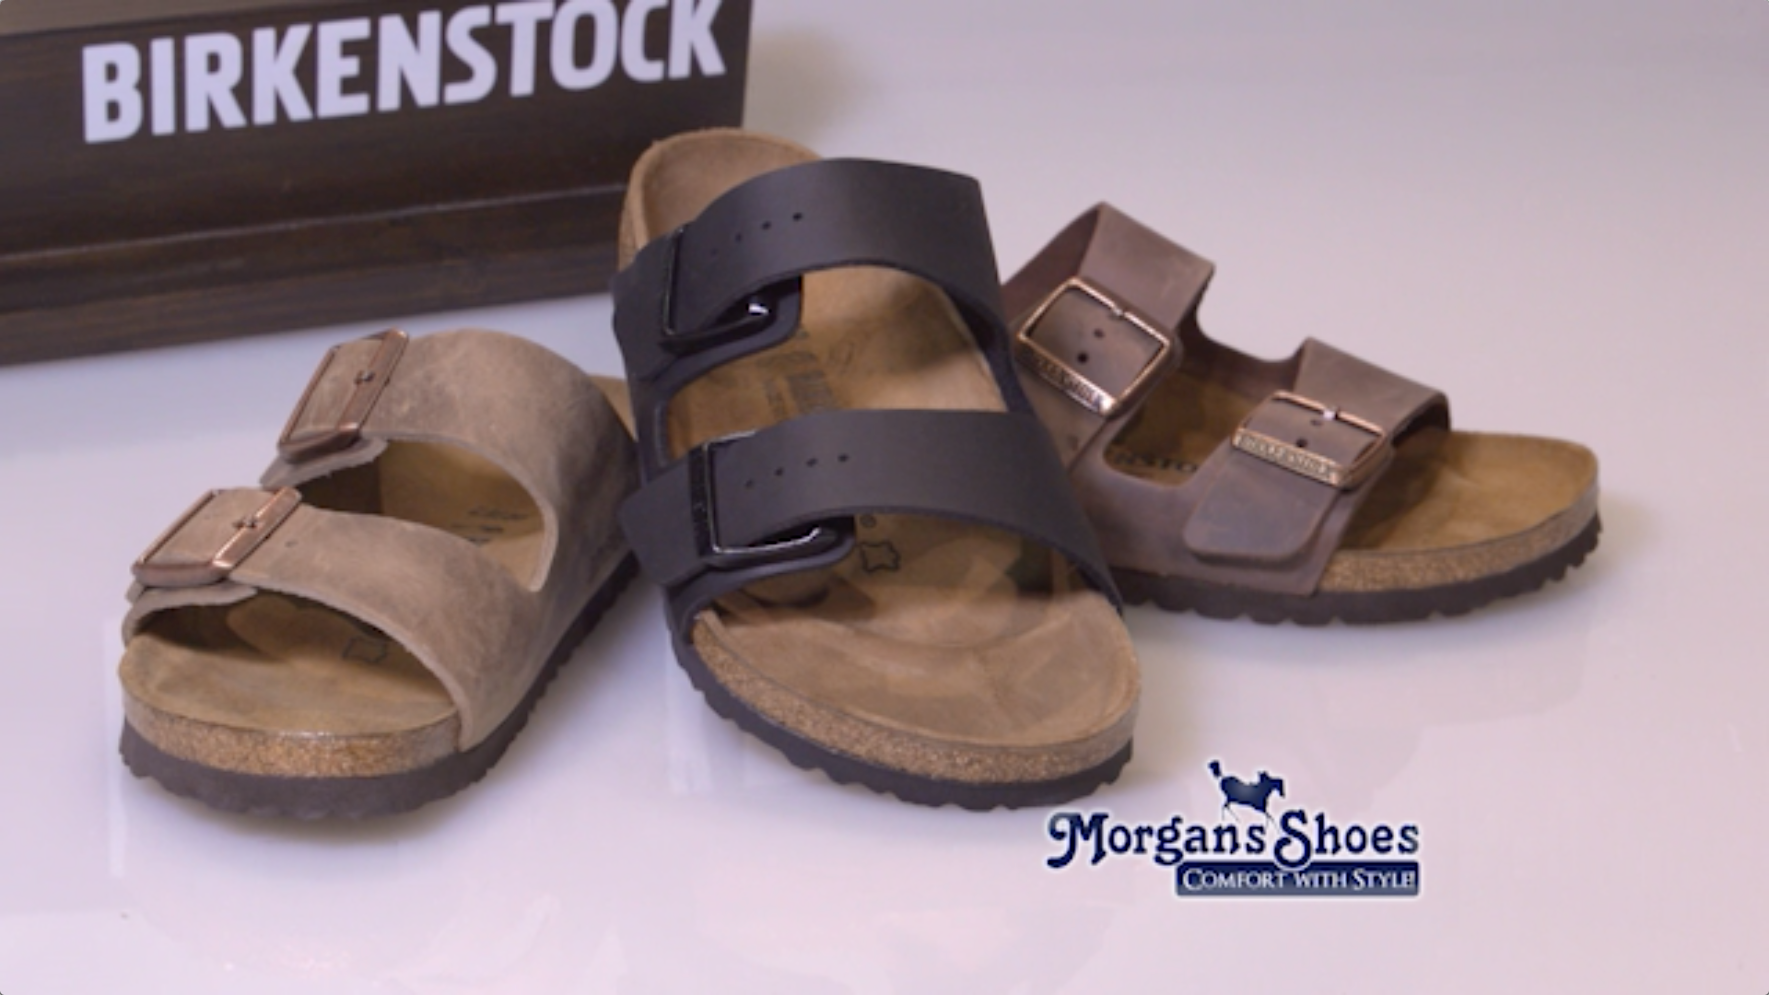 Morgan Shoes Birkenstock